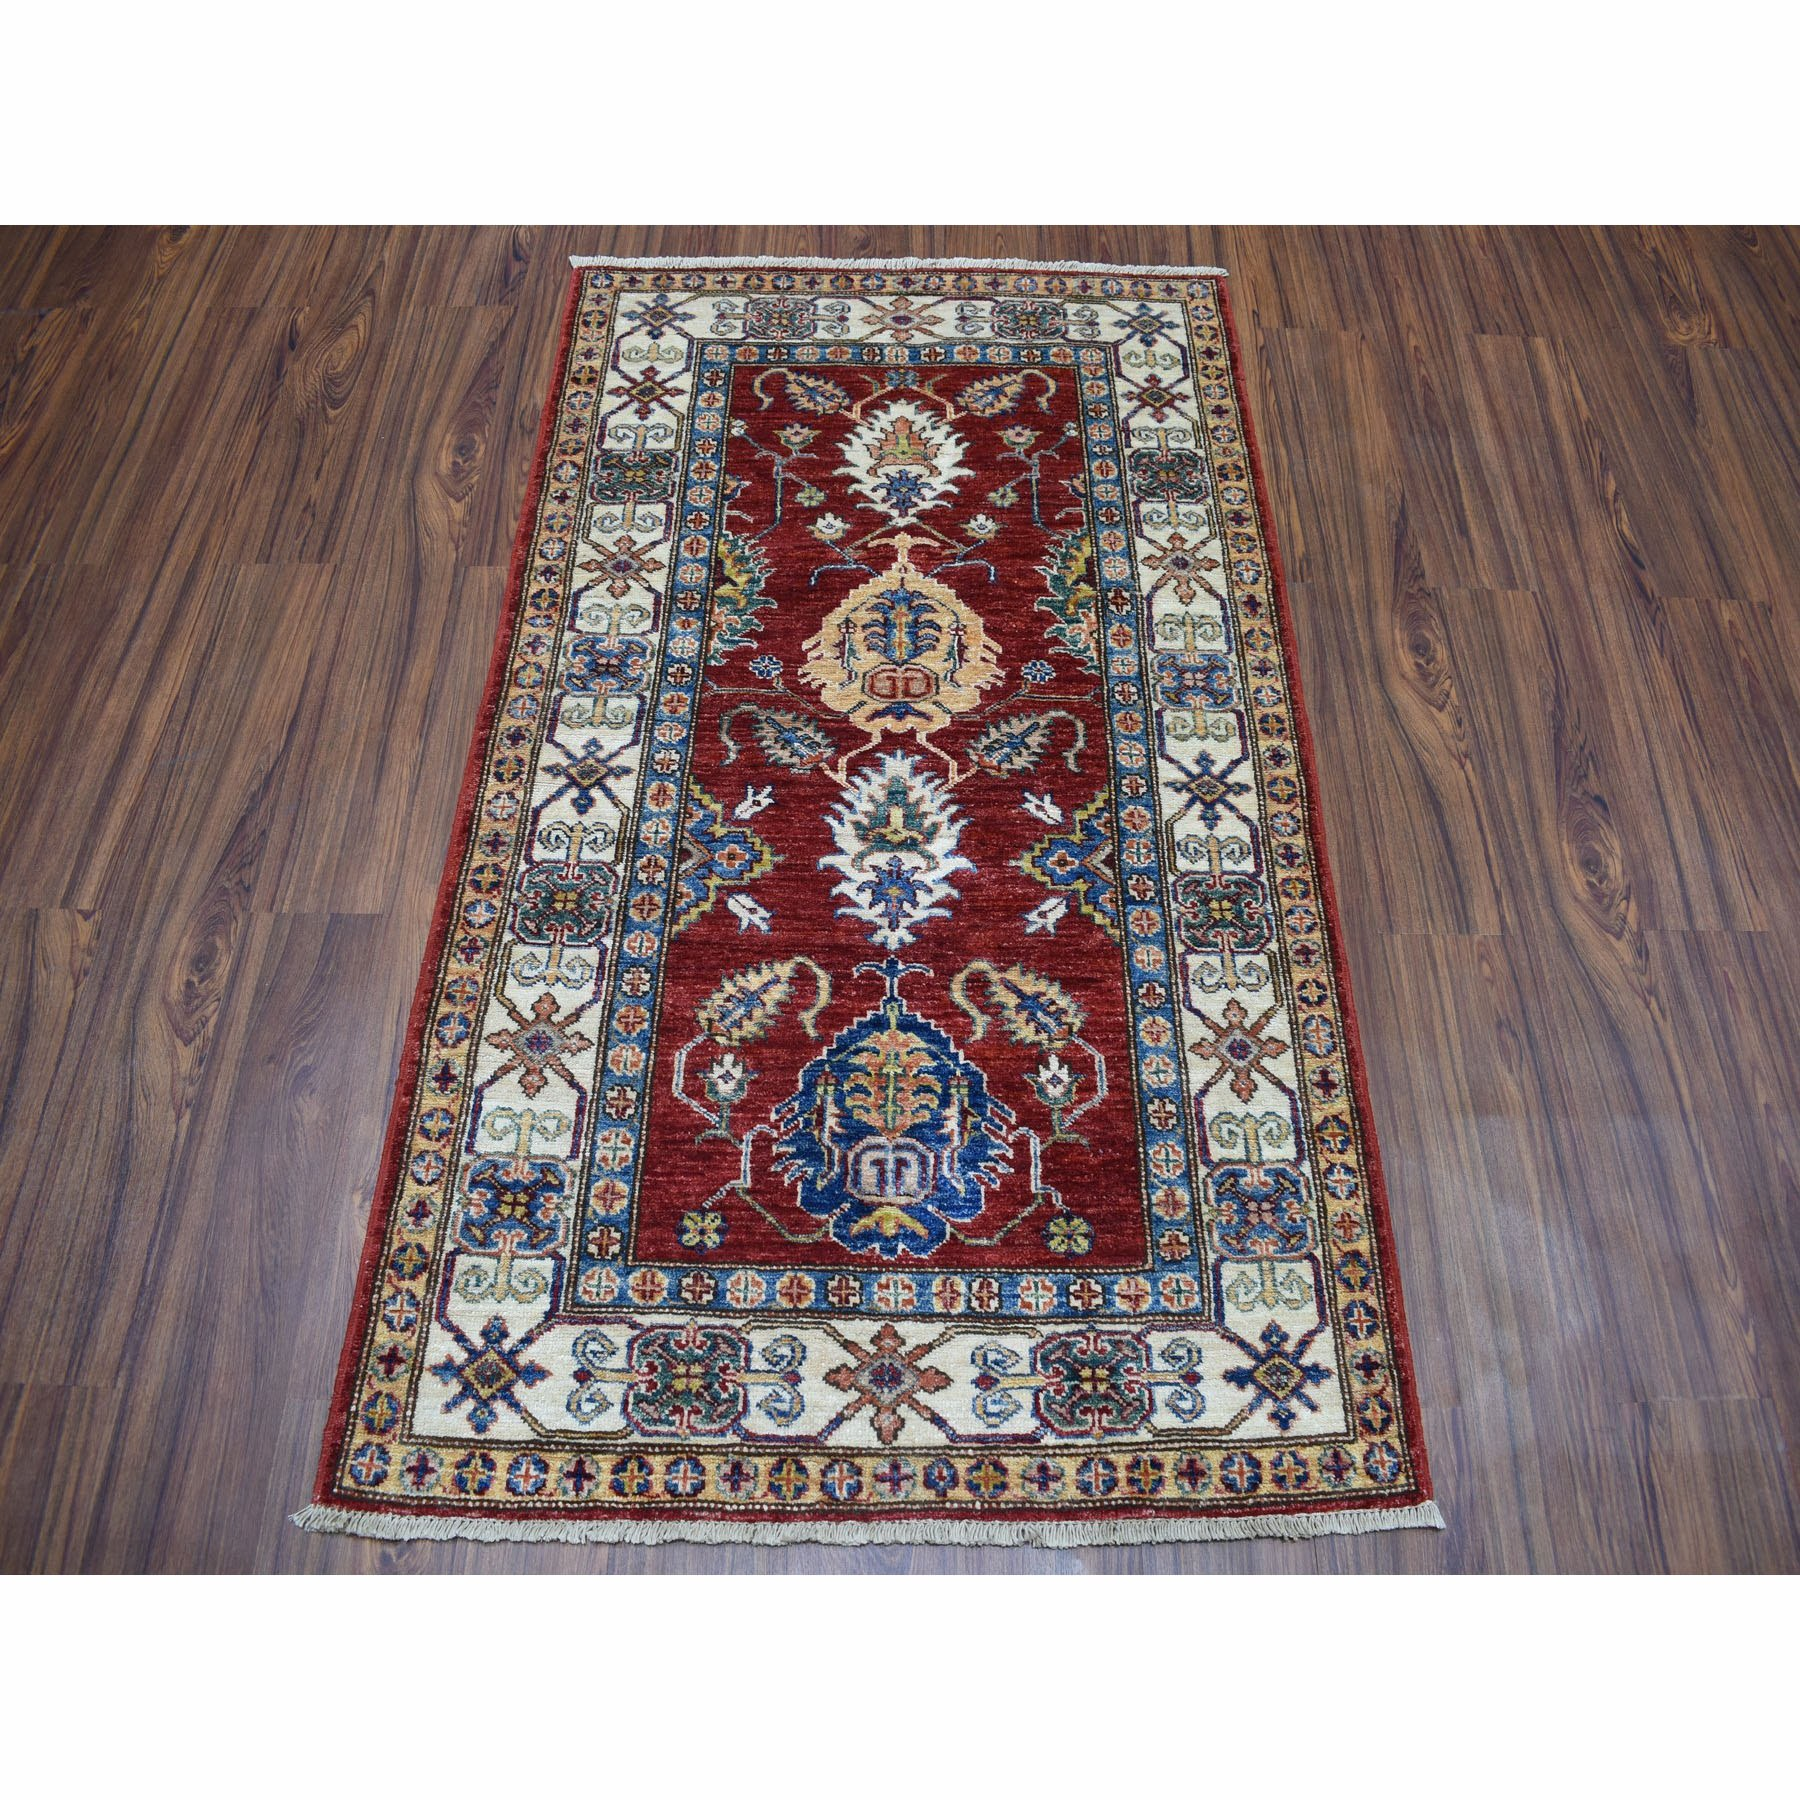 3-1 x5- Red Super Kazak Pure Wool Geometric Design Hand-Knotted Oriental Rug